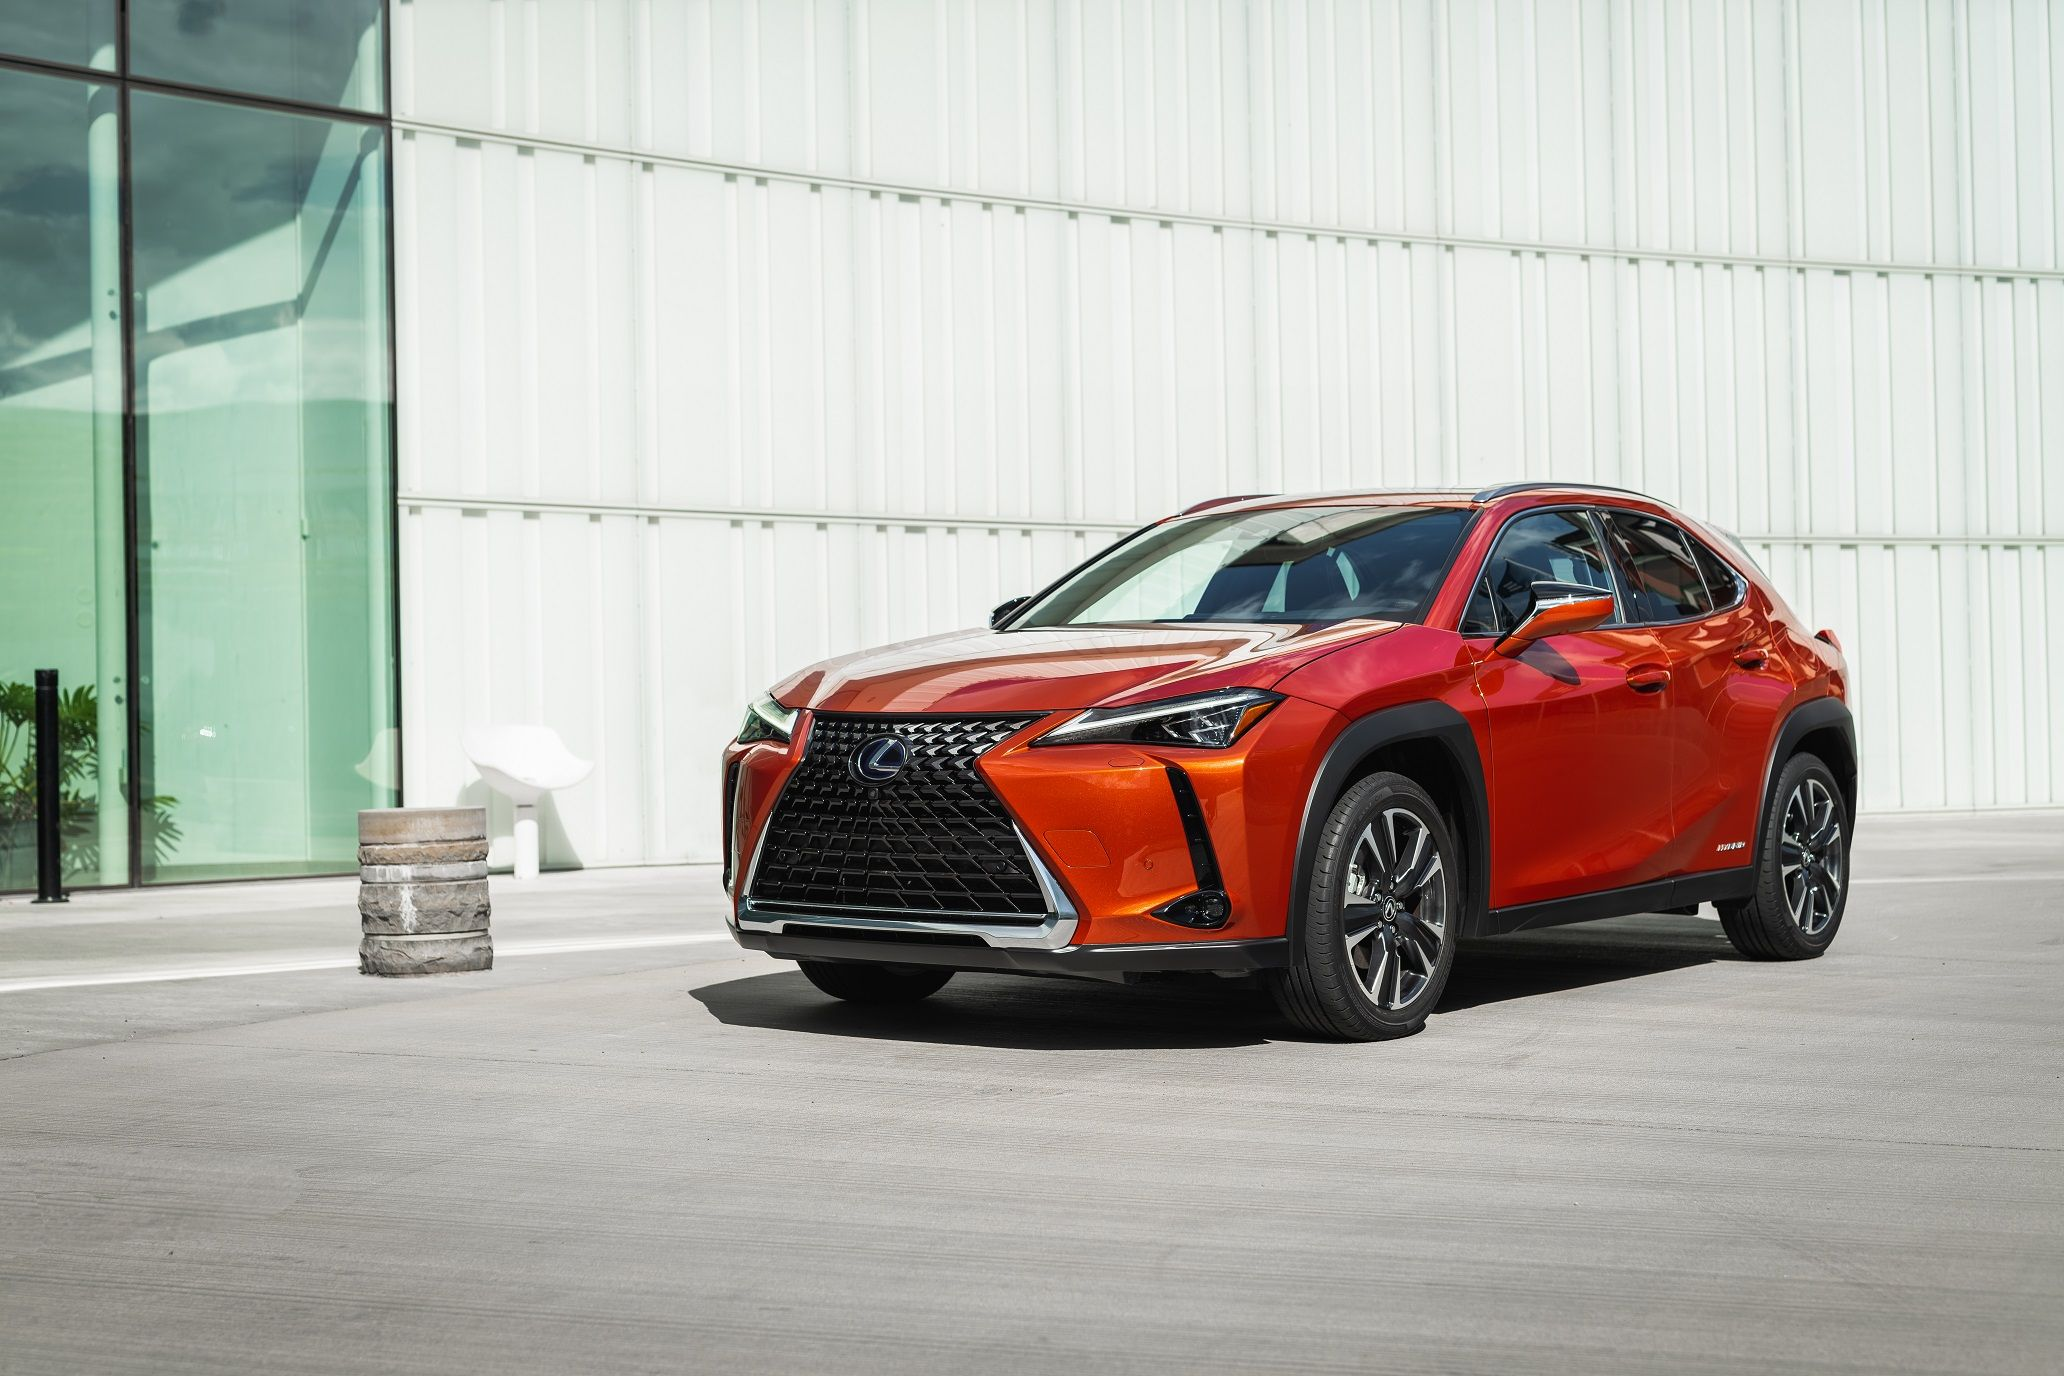 The All New Urban Explorer The Lexus Ux 250h Makes Its Canadian Debut At The Montreal International Auto Show Lexus Car Compact Suv